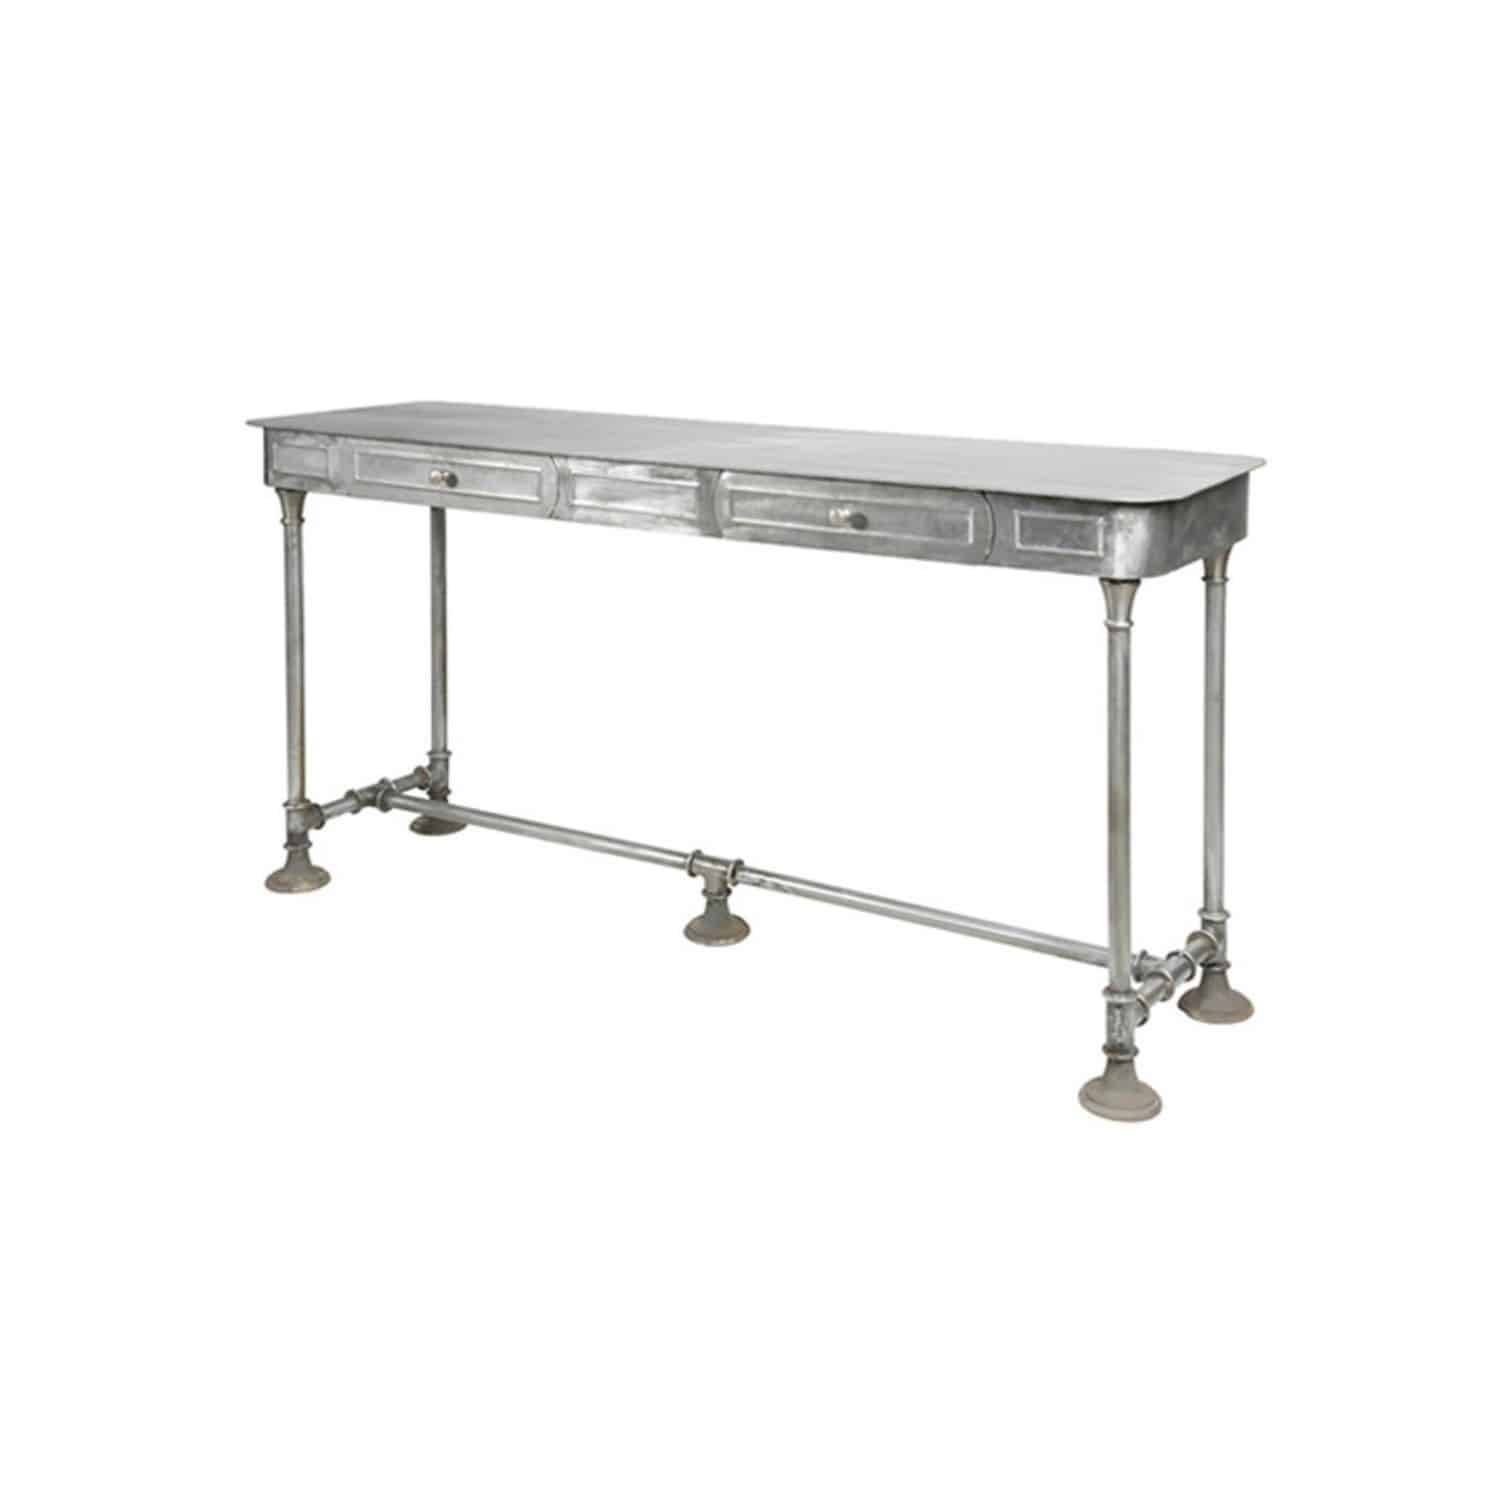 Industrial Style Sideboard Table / Brushed Metal / Rectangular within Metal Sideboard Furniture (Image 22 of 30)